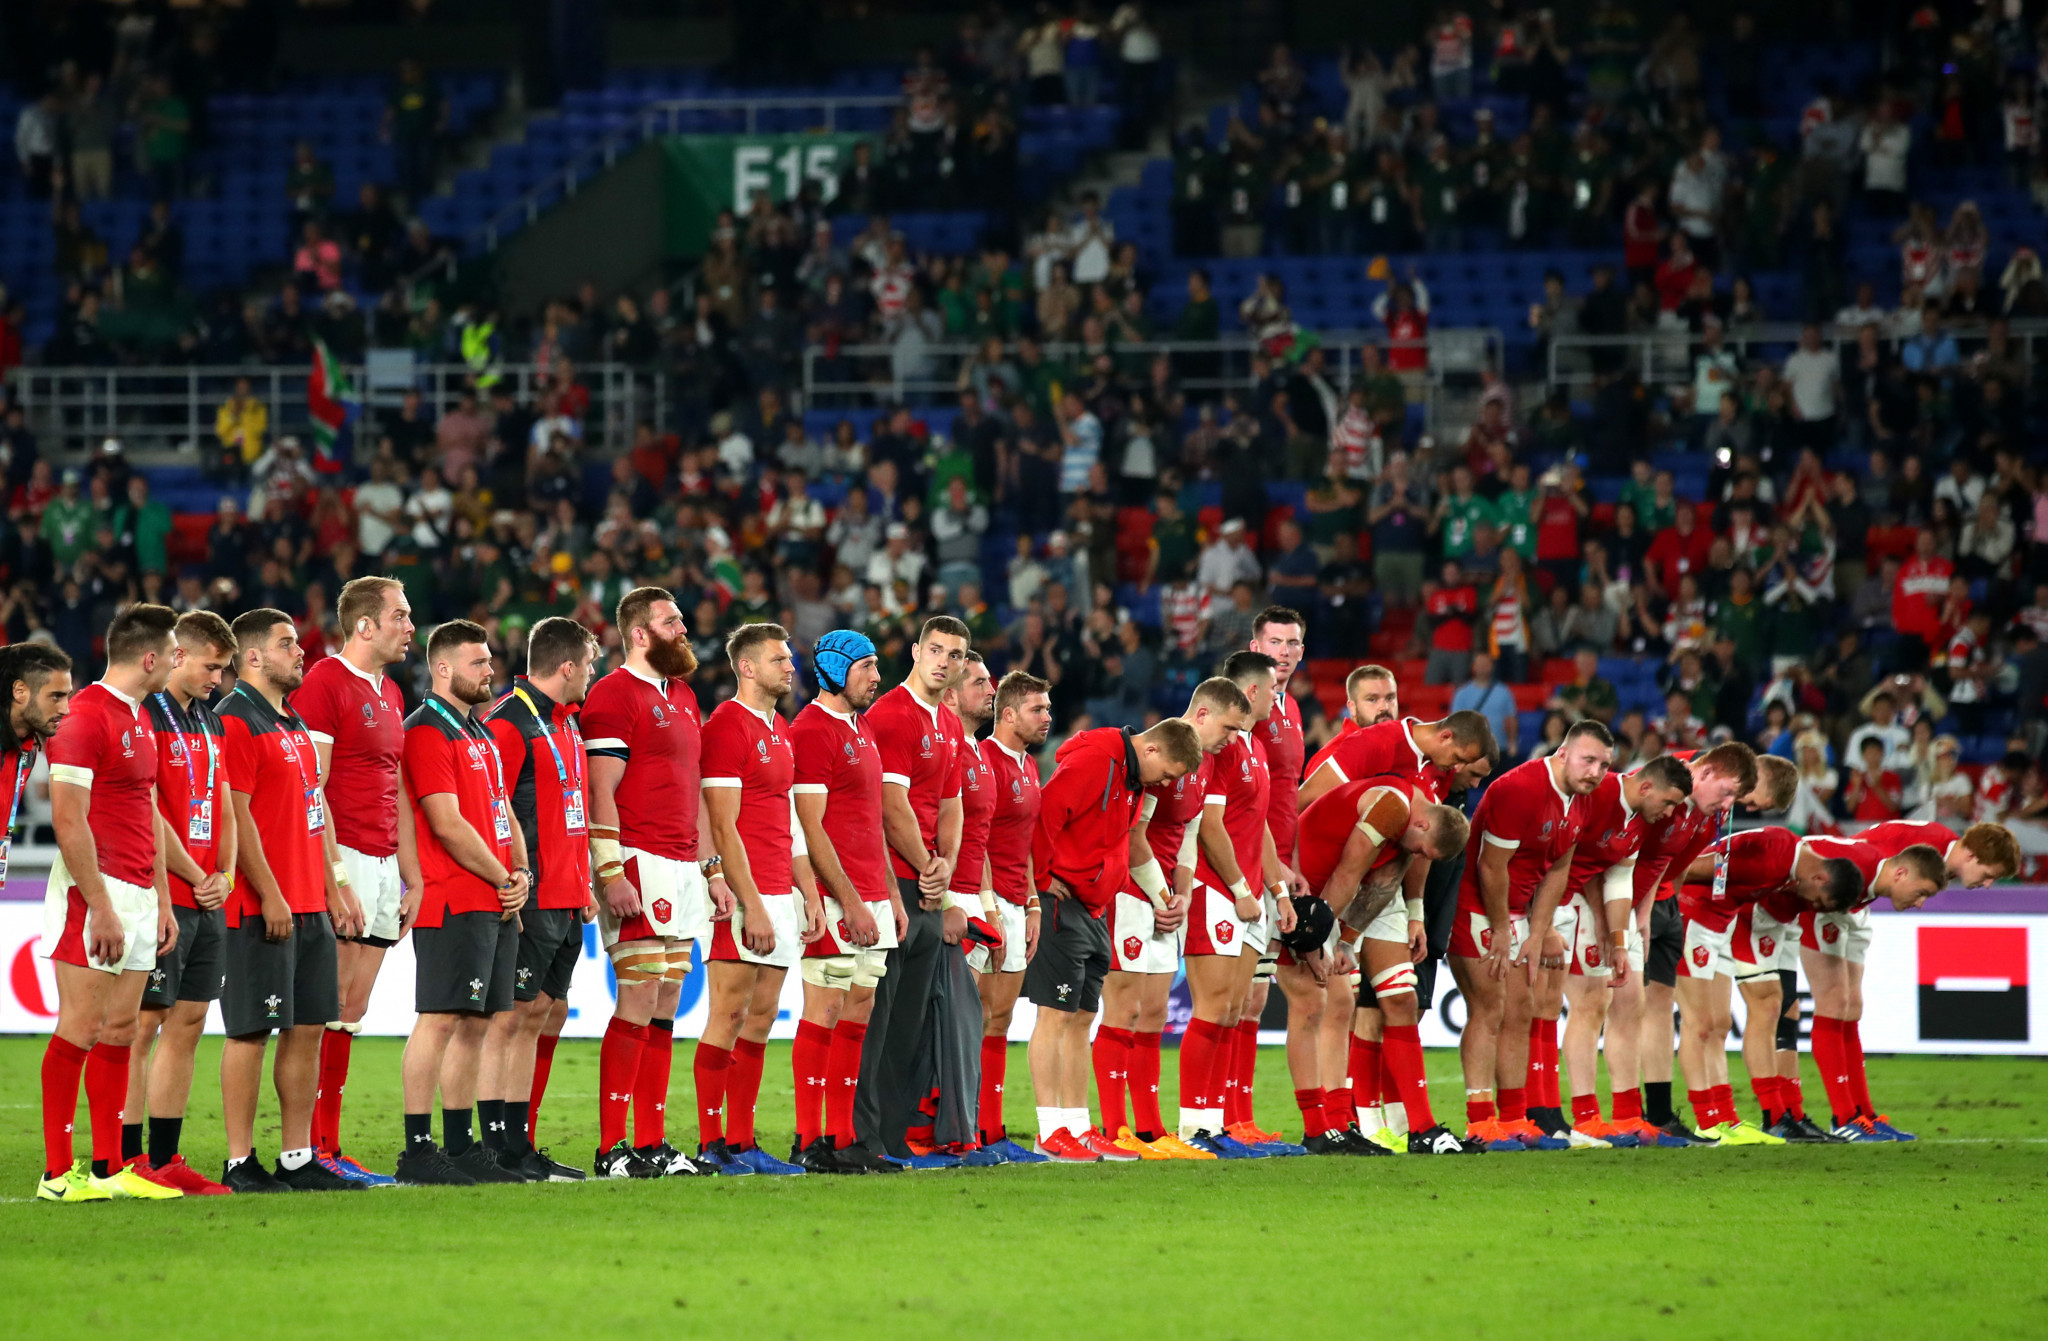 Wales were desolate at the final whistle following their heartbreaking exit ©Getty Images